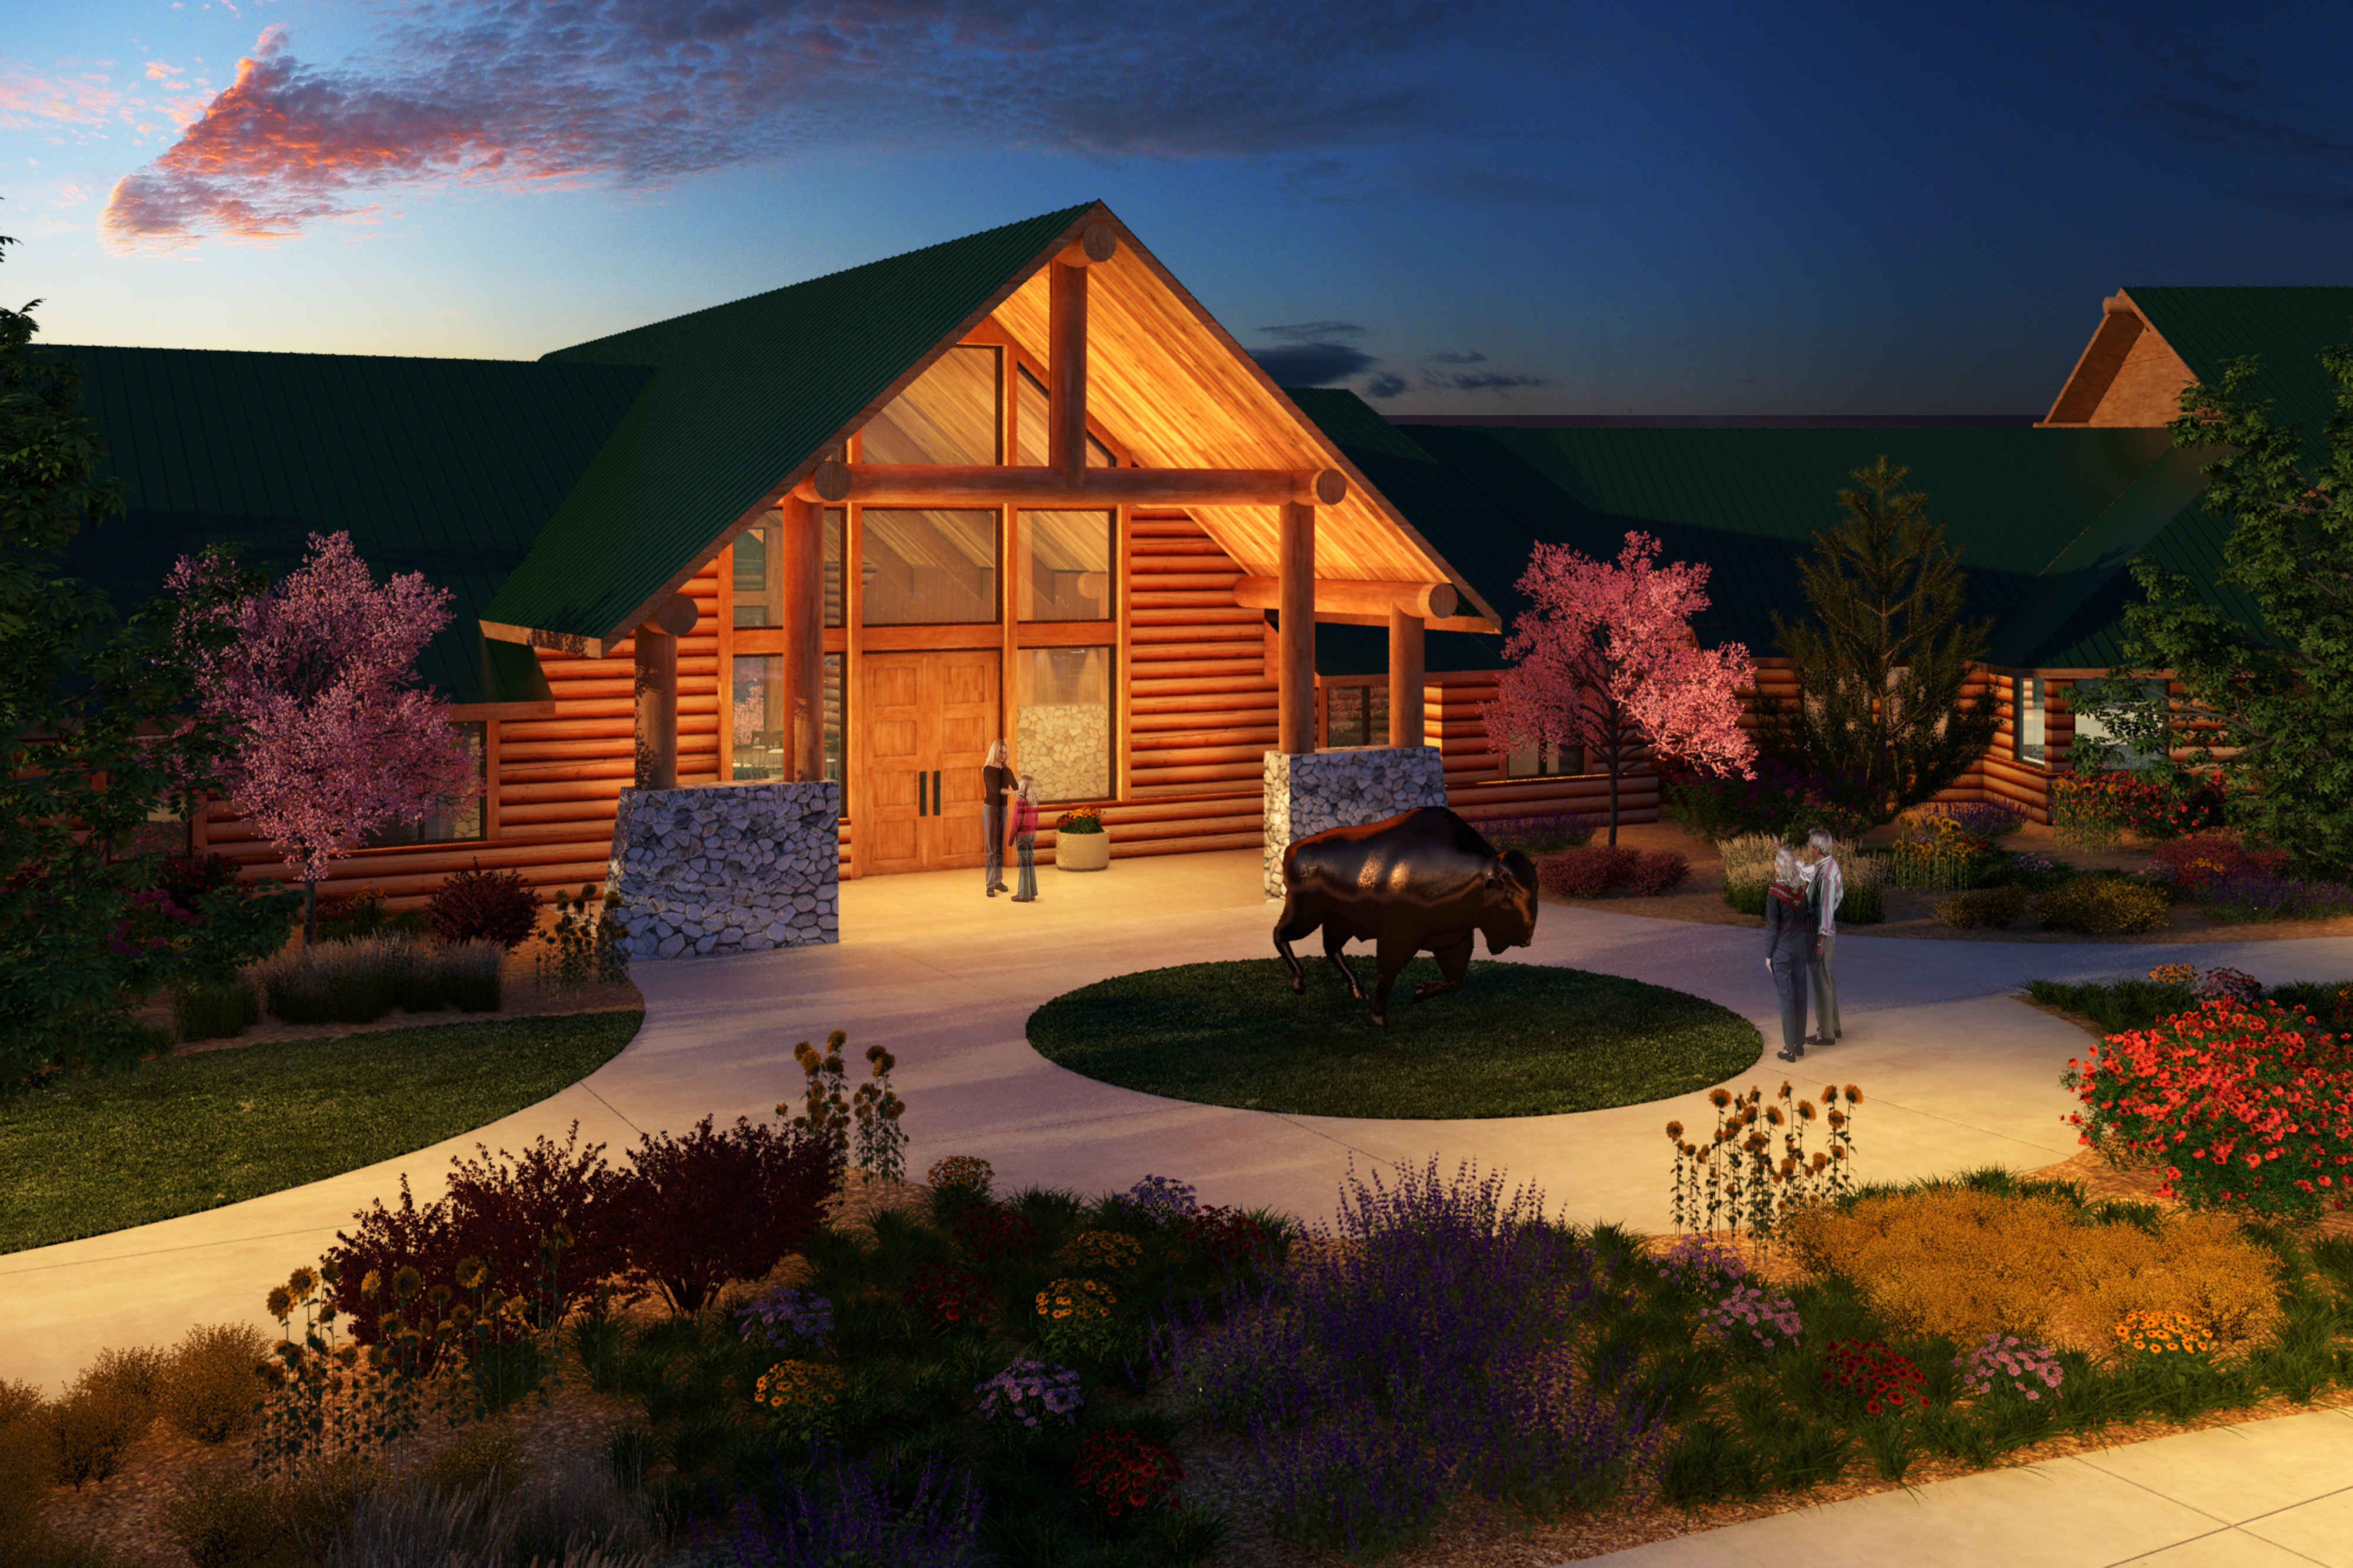 Sundance Ridge: Rodrock Development